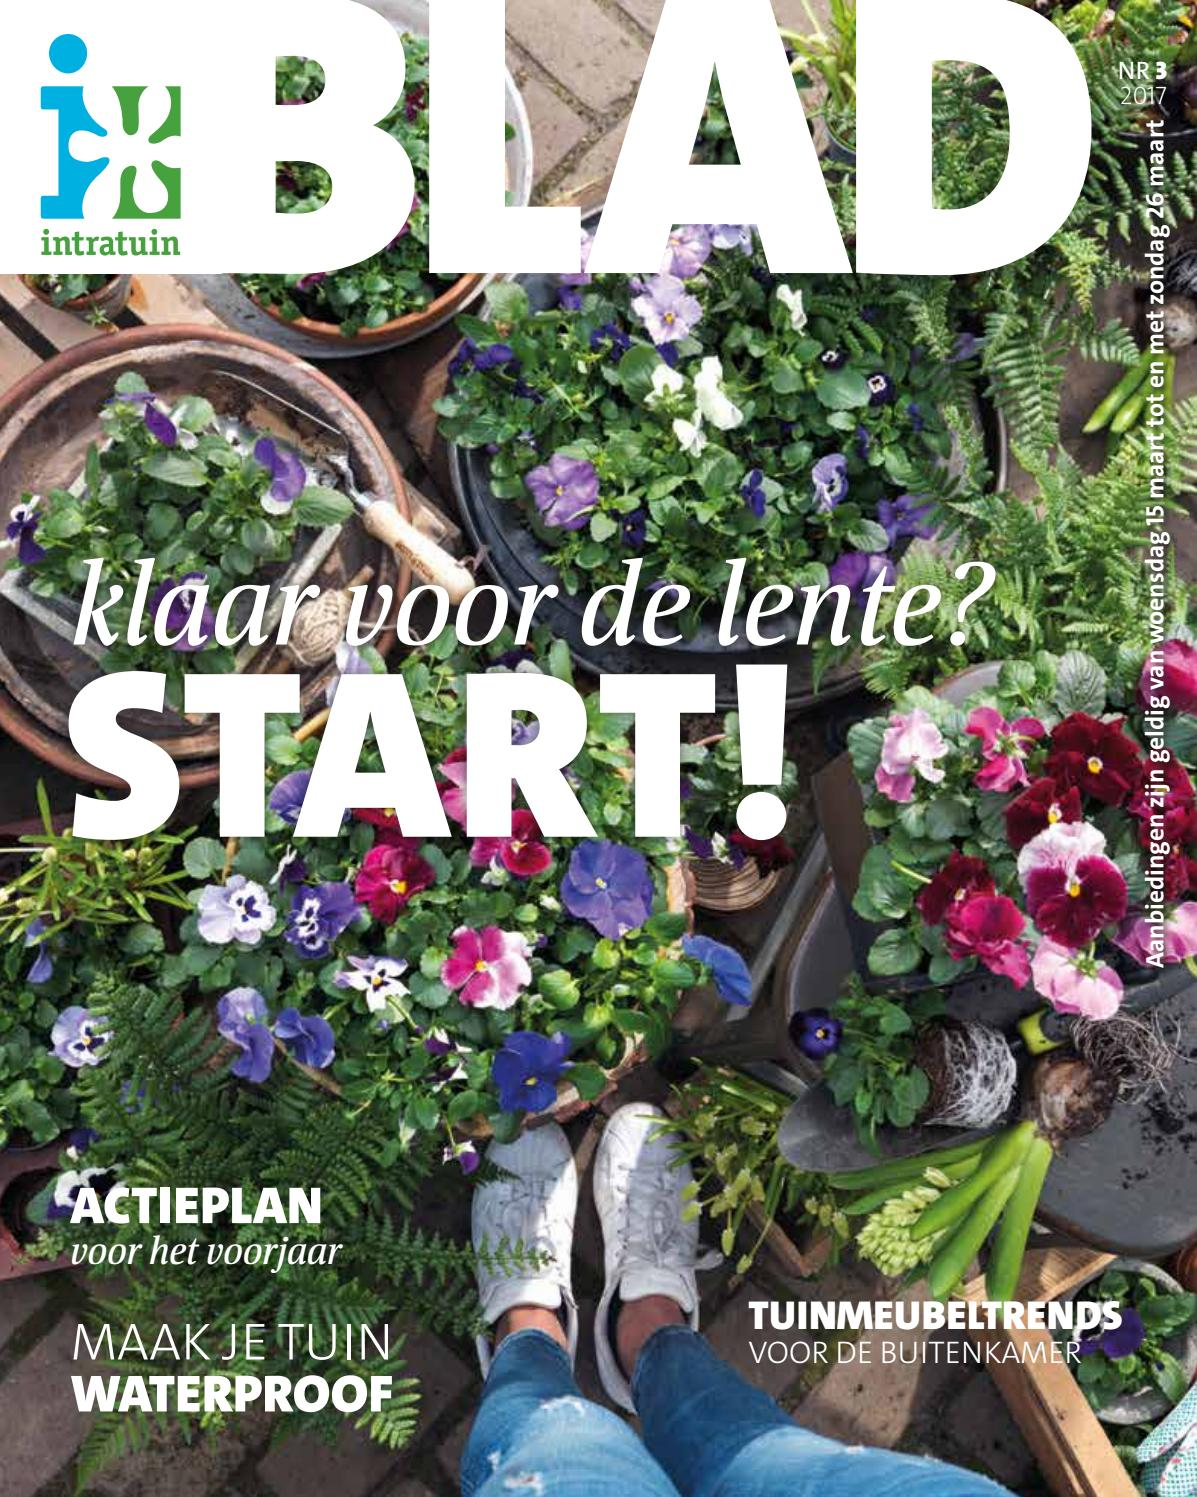 Hedera Schutting Intratuin Intratuin Nl 15 03 Tot 26 03 By Profacts Issuu